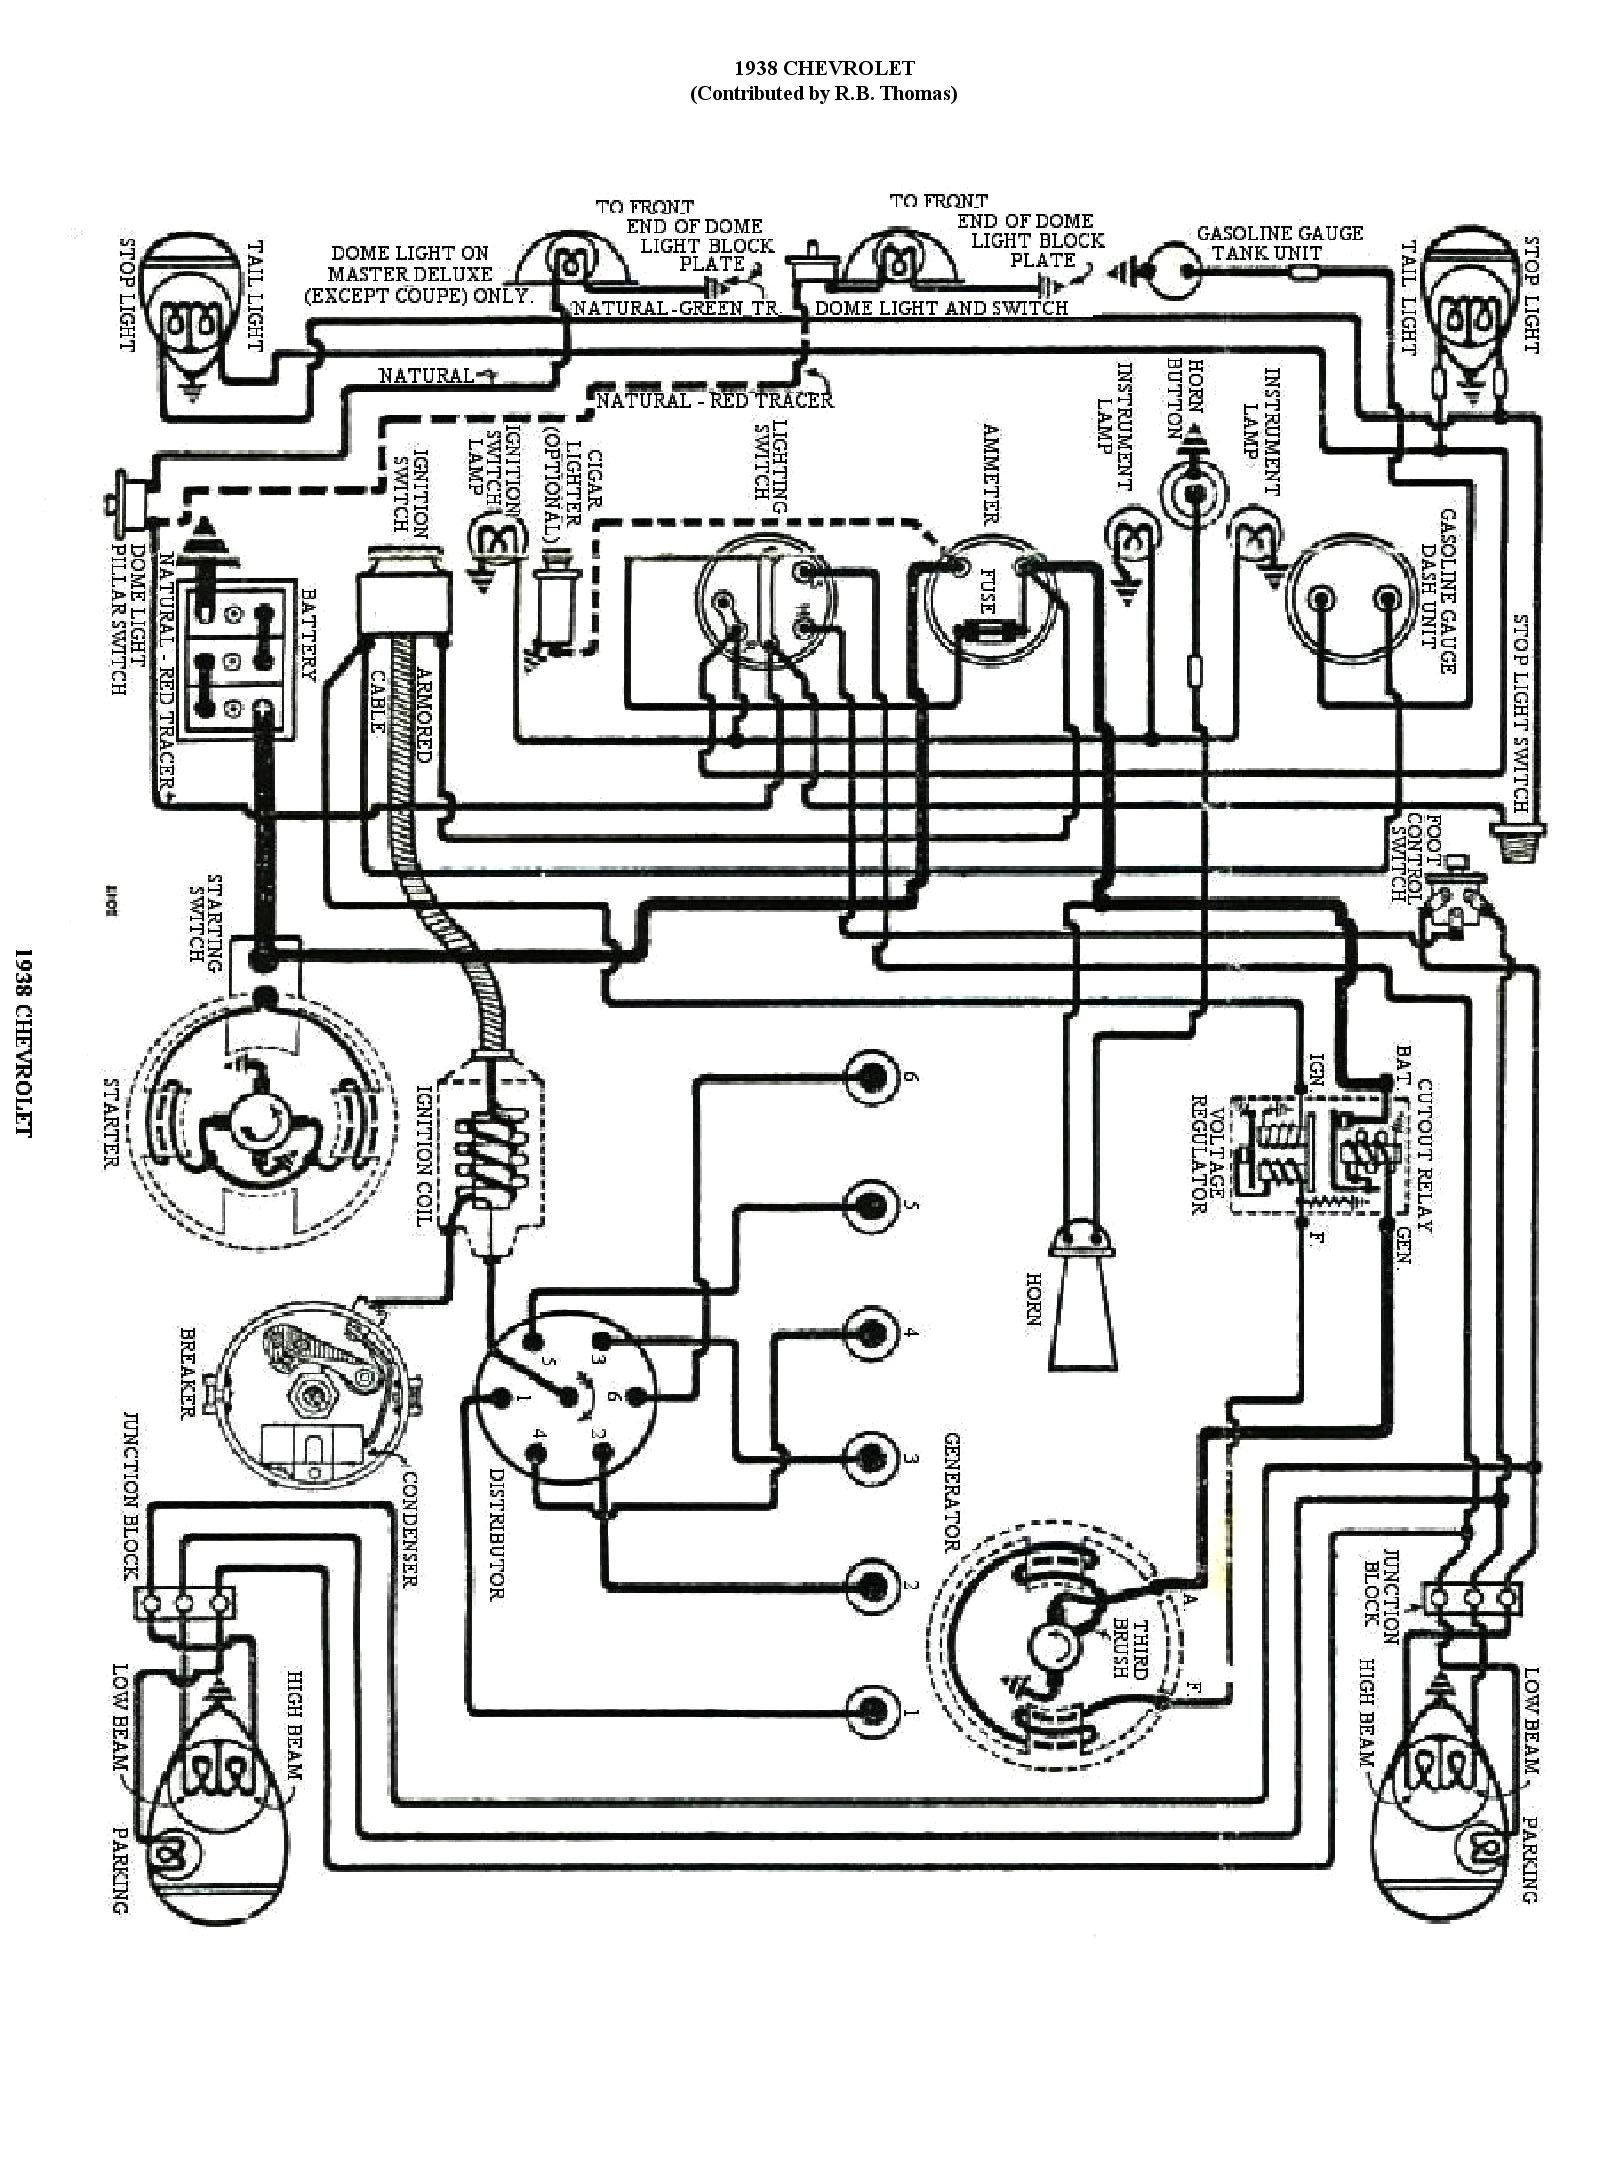 Chevy Wiring Diagrams Series Circuit Schematic Get Free Image About Diagram 1938